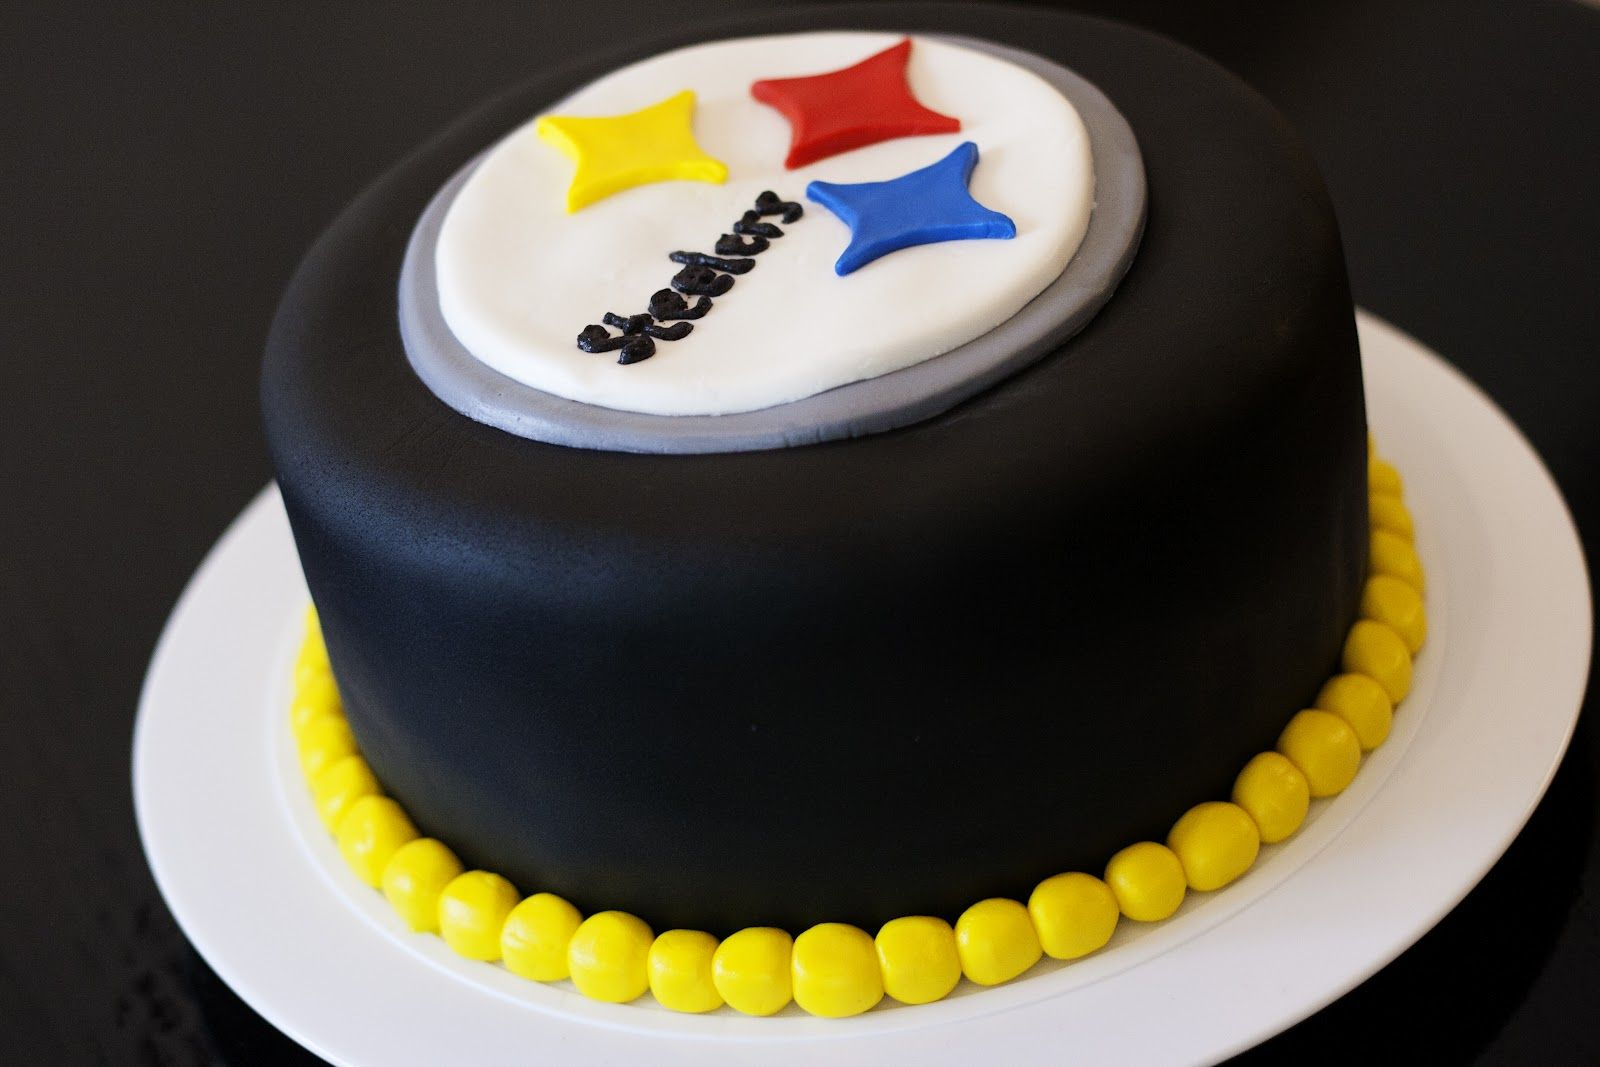 Pittsburgh Steelers Cake Birthday Cake Decorating Bowl Cake Cake